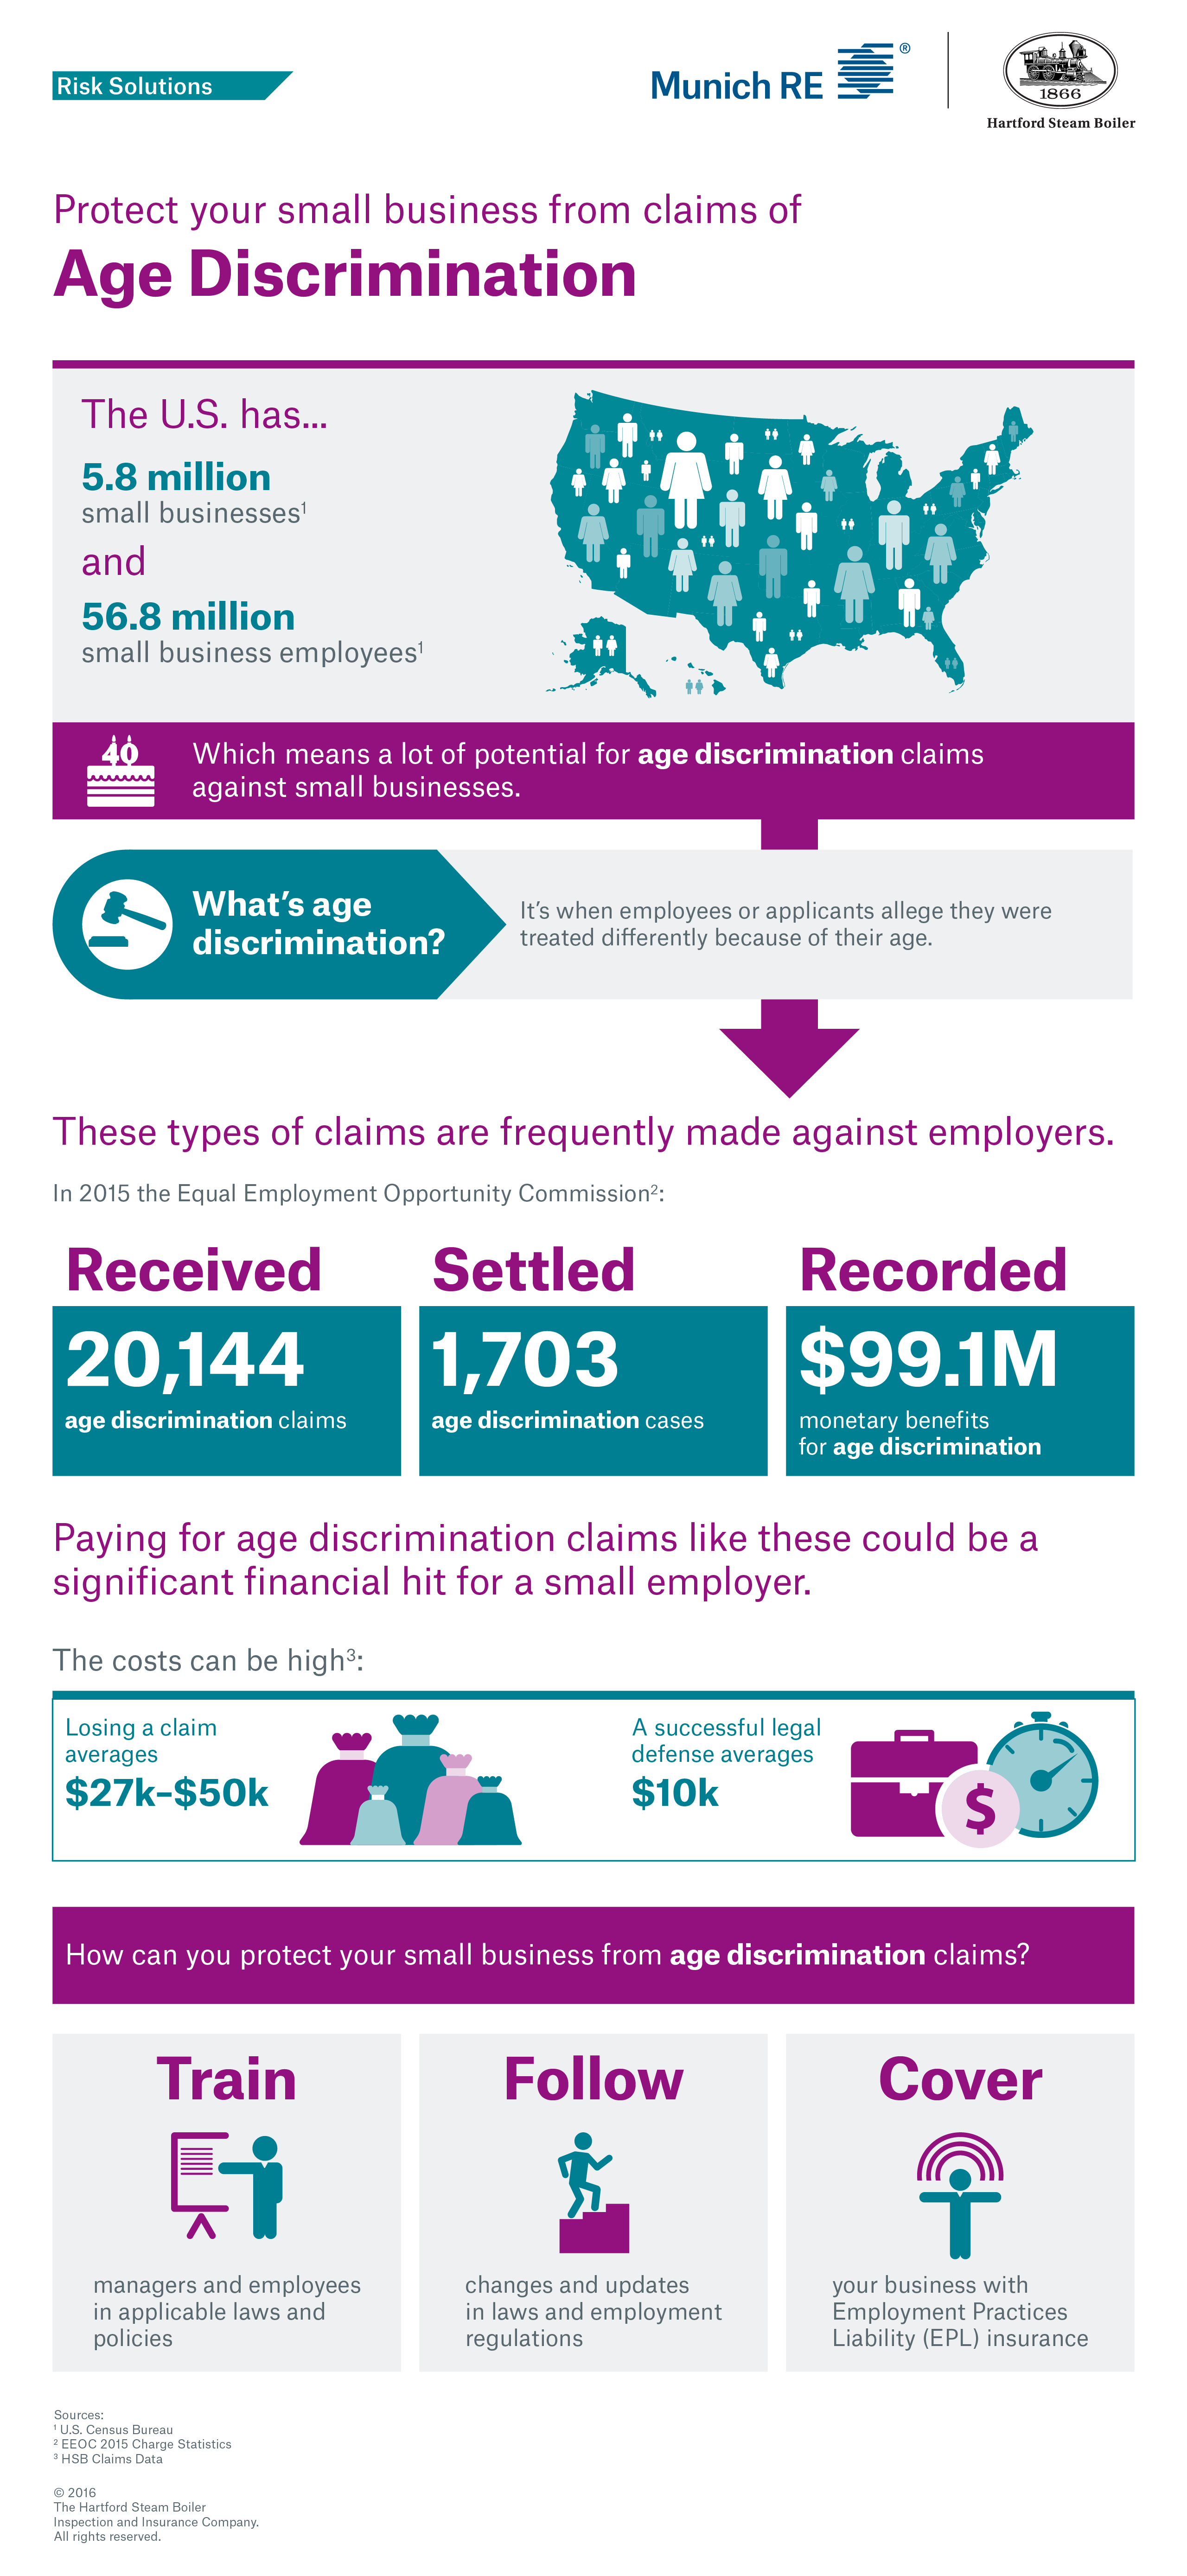 Protect your small business from claims of Age Discrimination